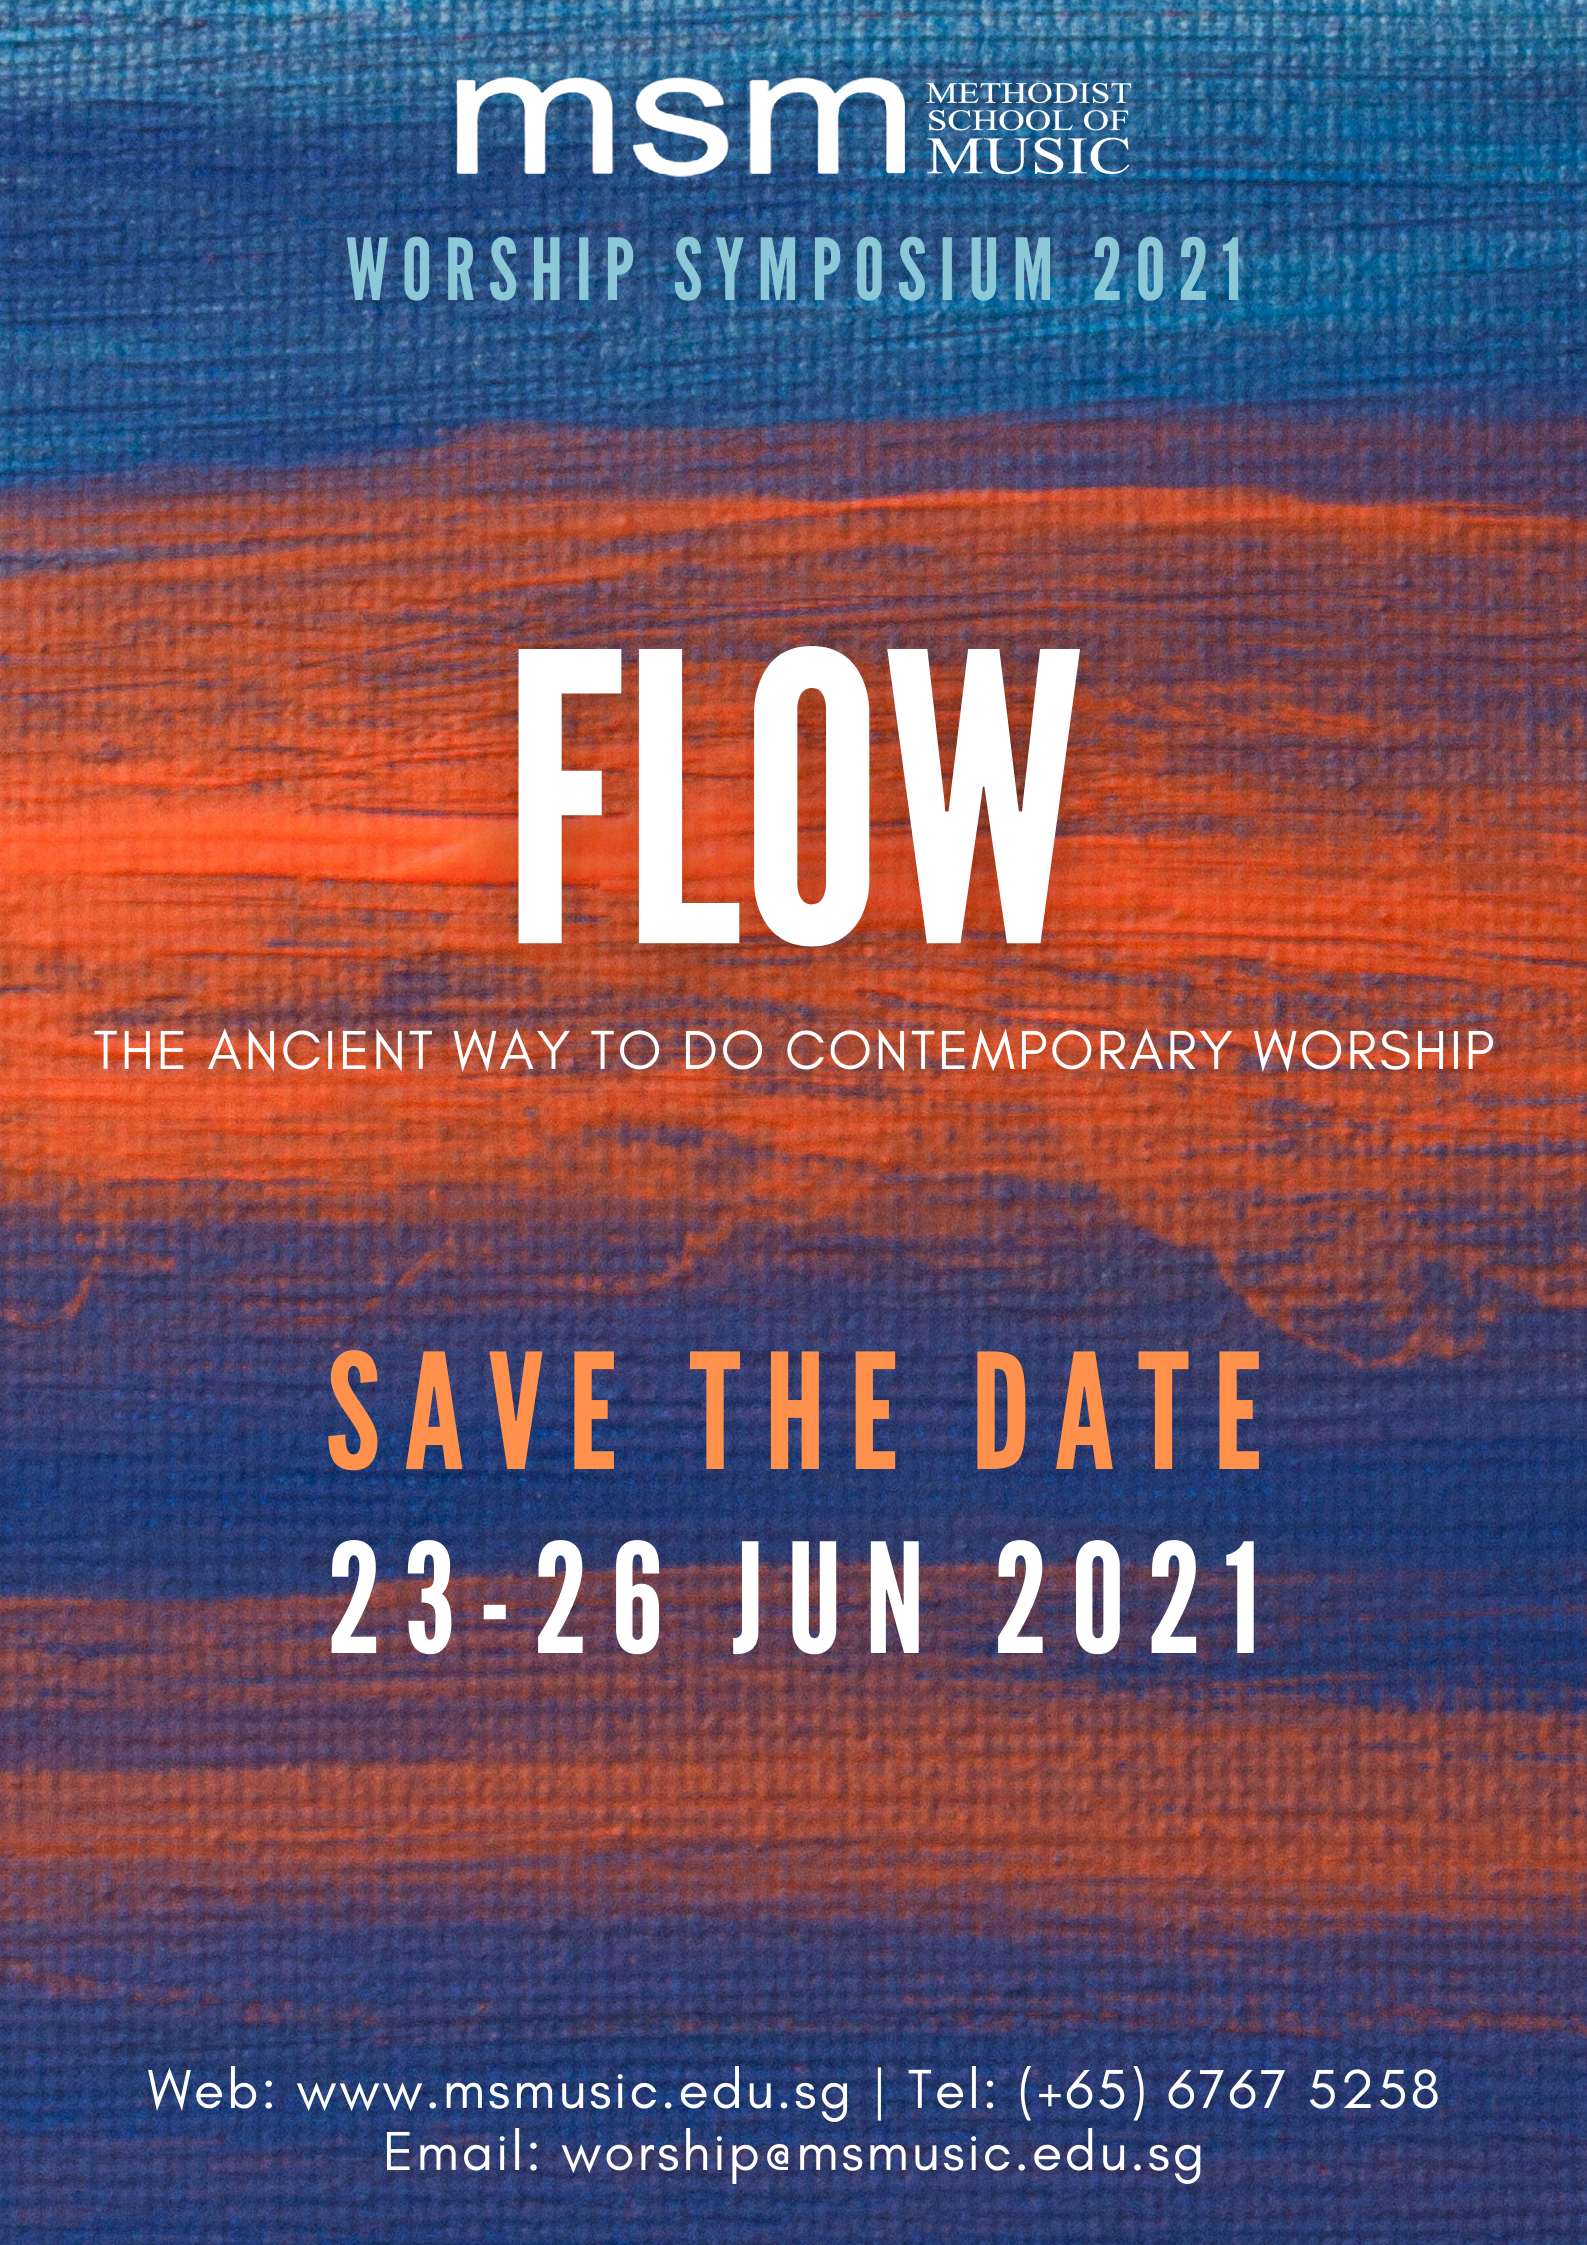 Worship Symposium 2021: Flow